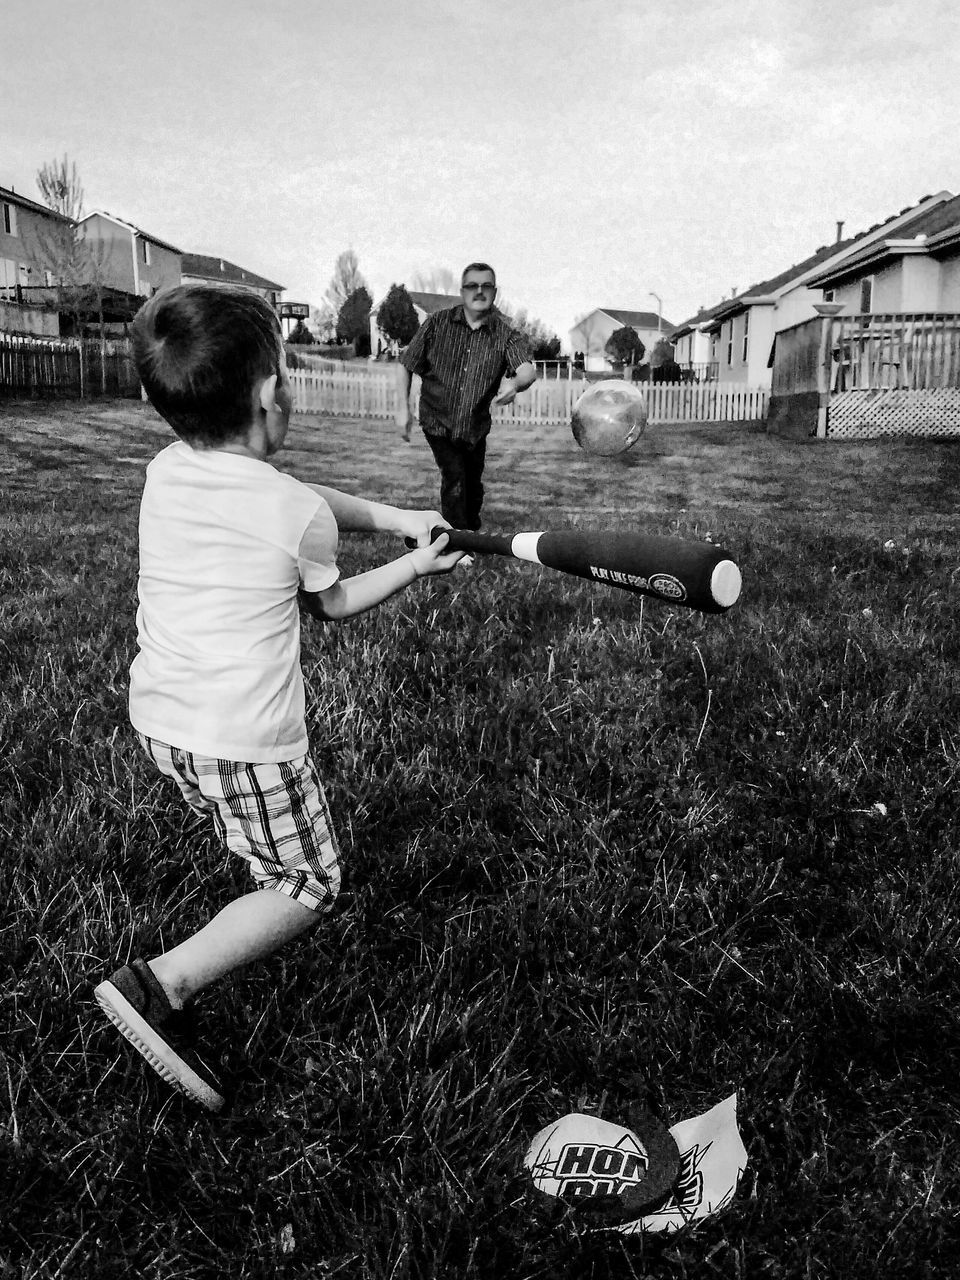 childhood, playing, boys, grass, full length, field, day, outdoors, sport, real people, child, people